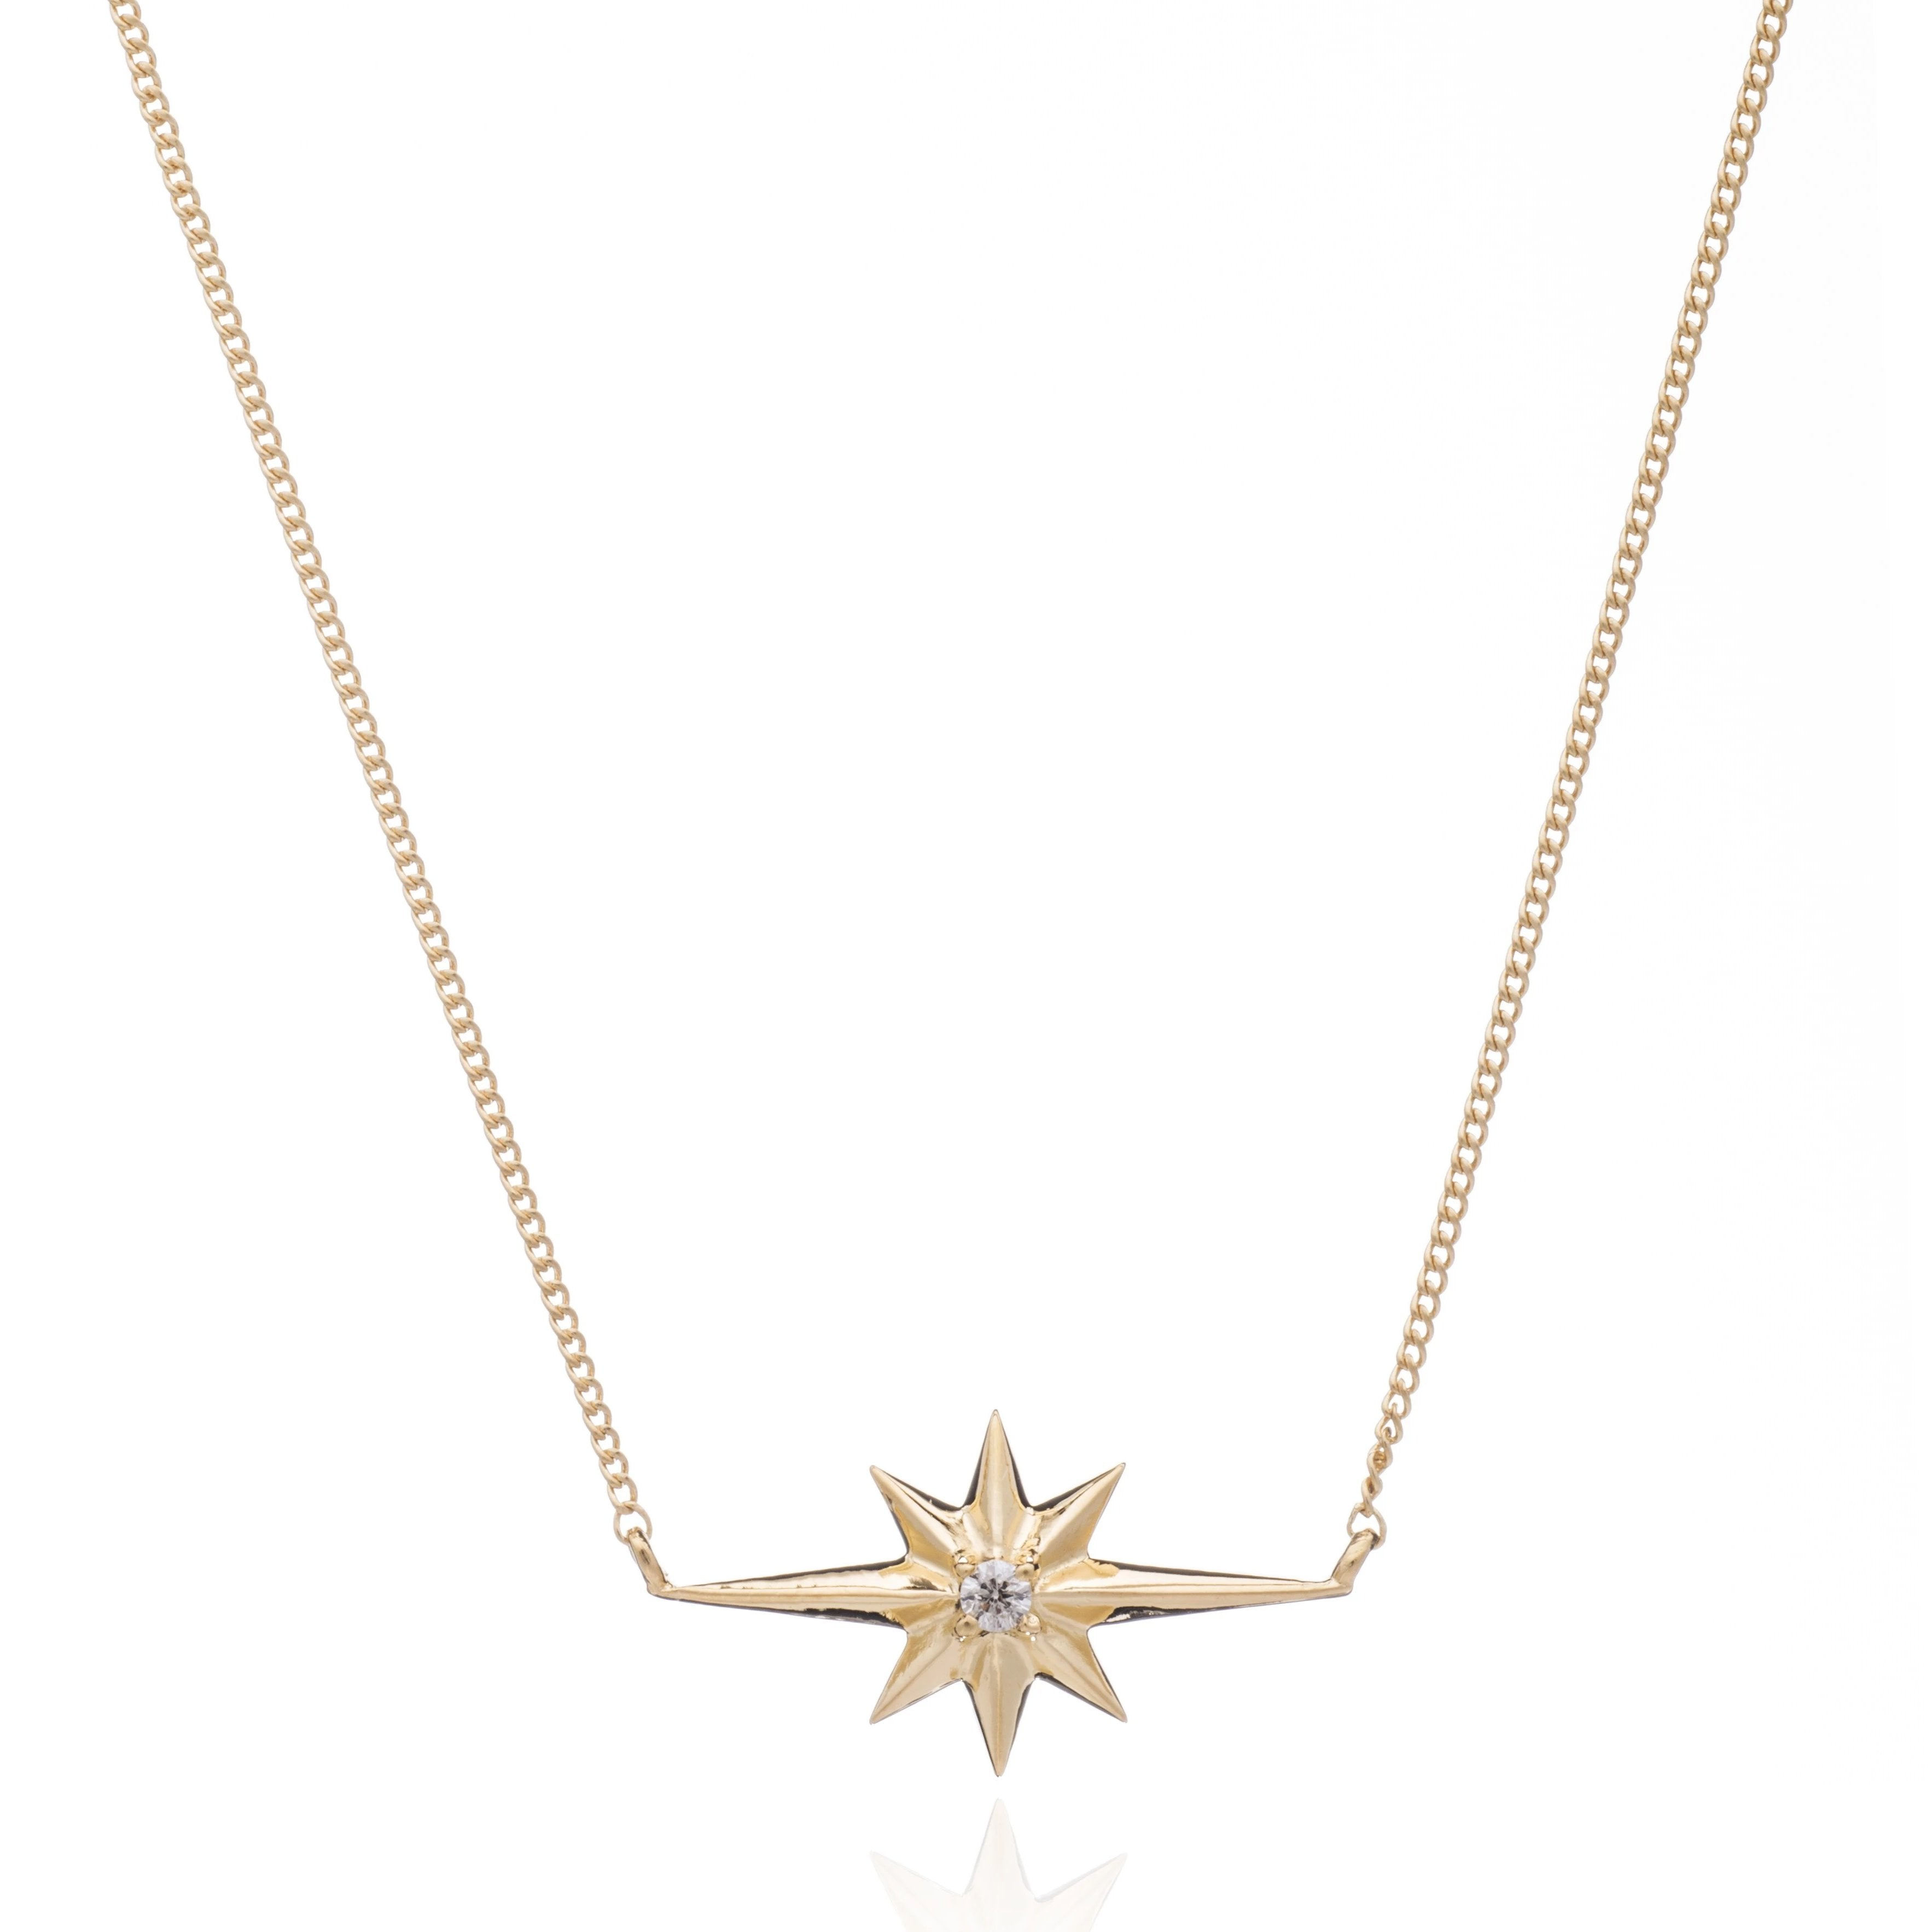 Silver Gold Plate Shooting Star Necklace - Andrew Scott